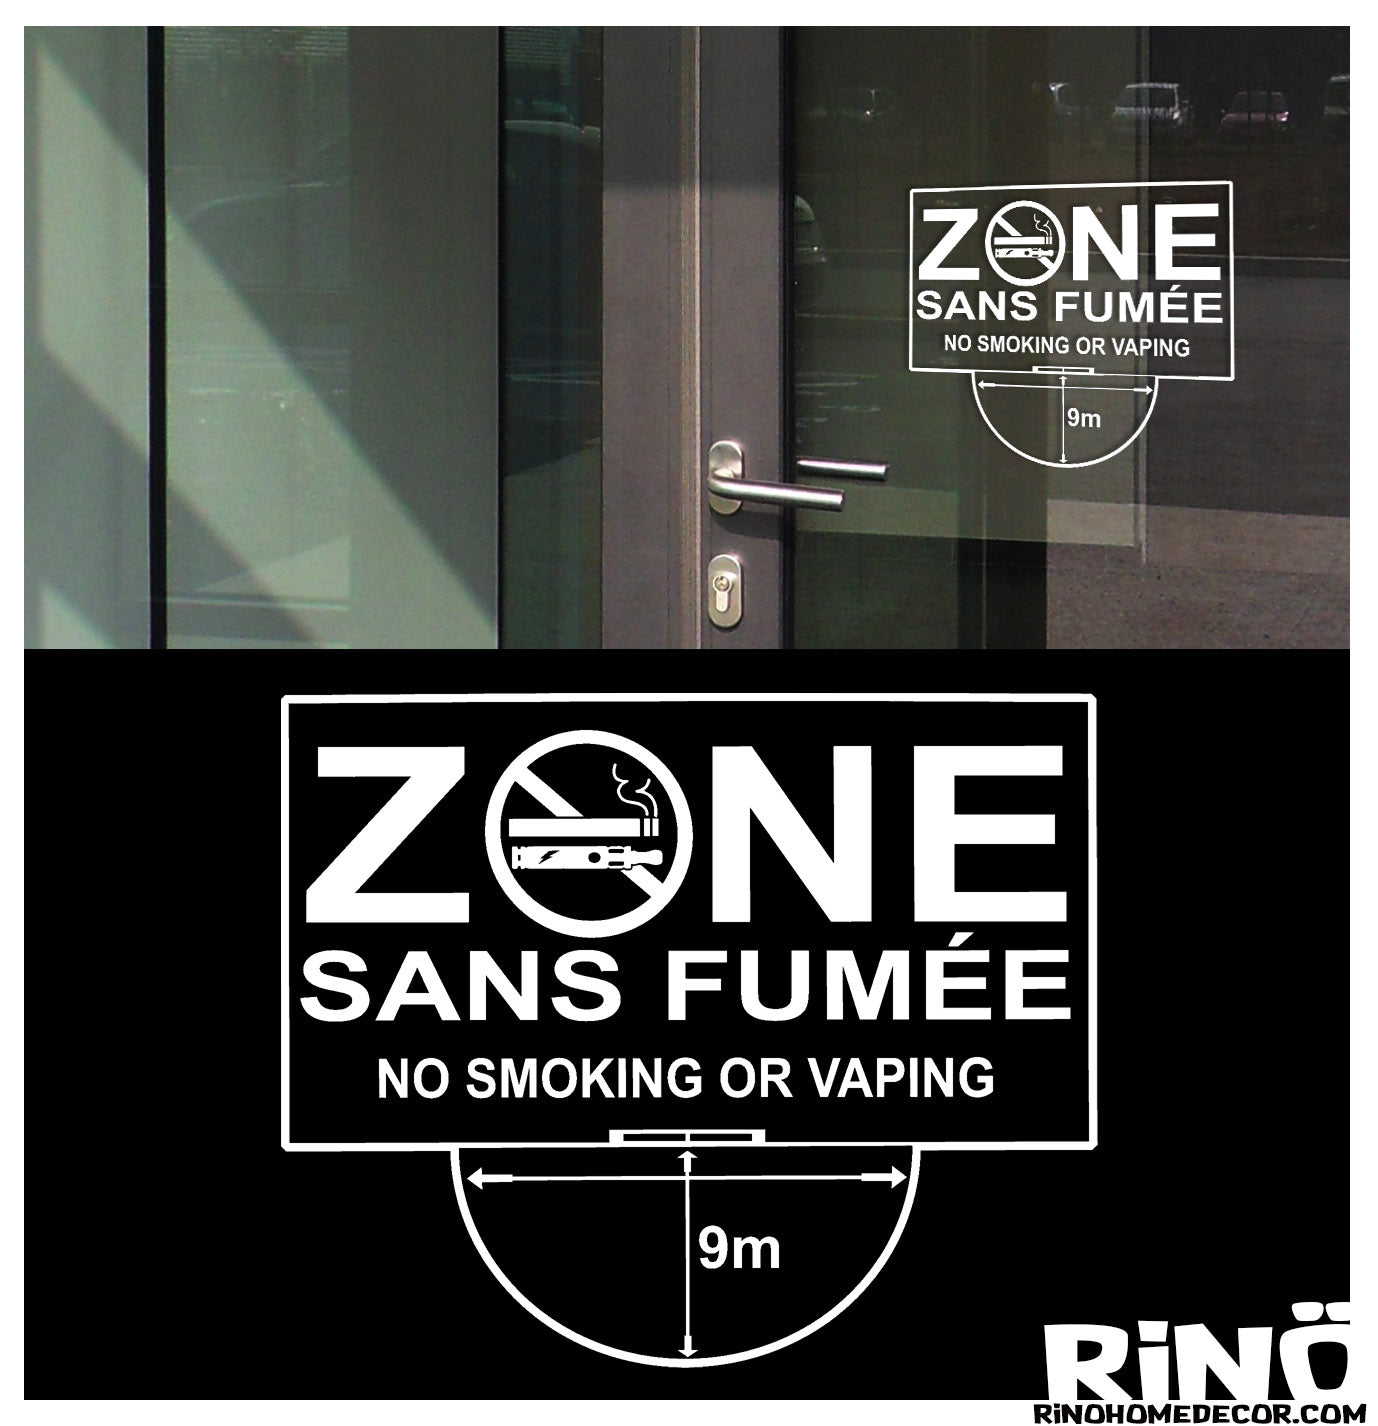 zone sans fumée no smoking or vaping smoke free zone